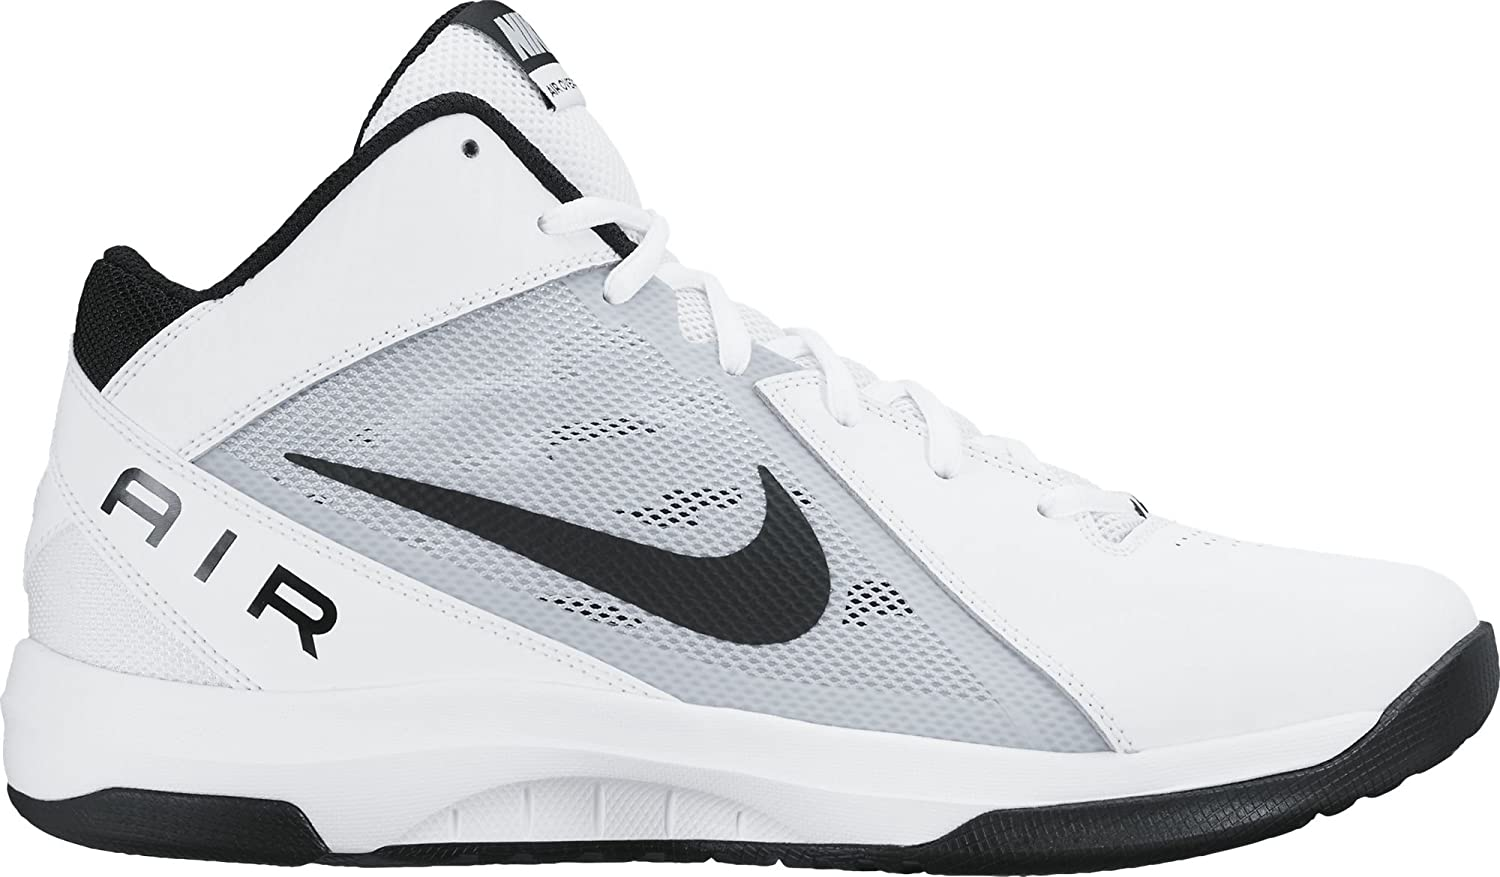 Nike Mens The Air Overplay IX WhiteBlackPure Platinum Basketball Shoe 13 Men US